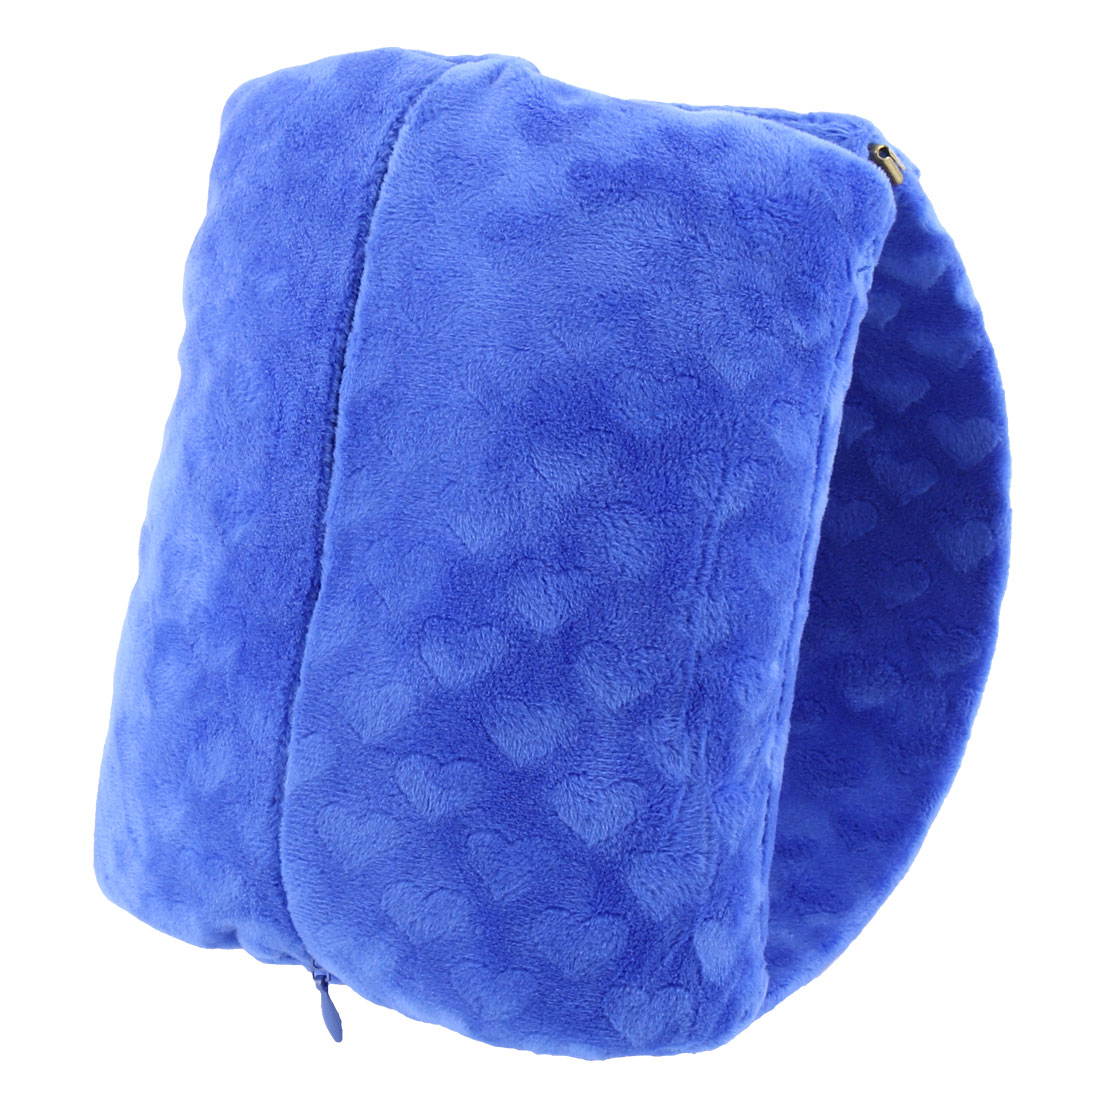 School Office Car Portable Travel Sleep Plush Soft Nap Pillow Cushion Gift Blue